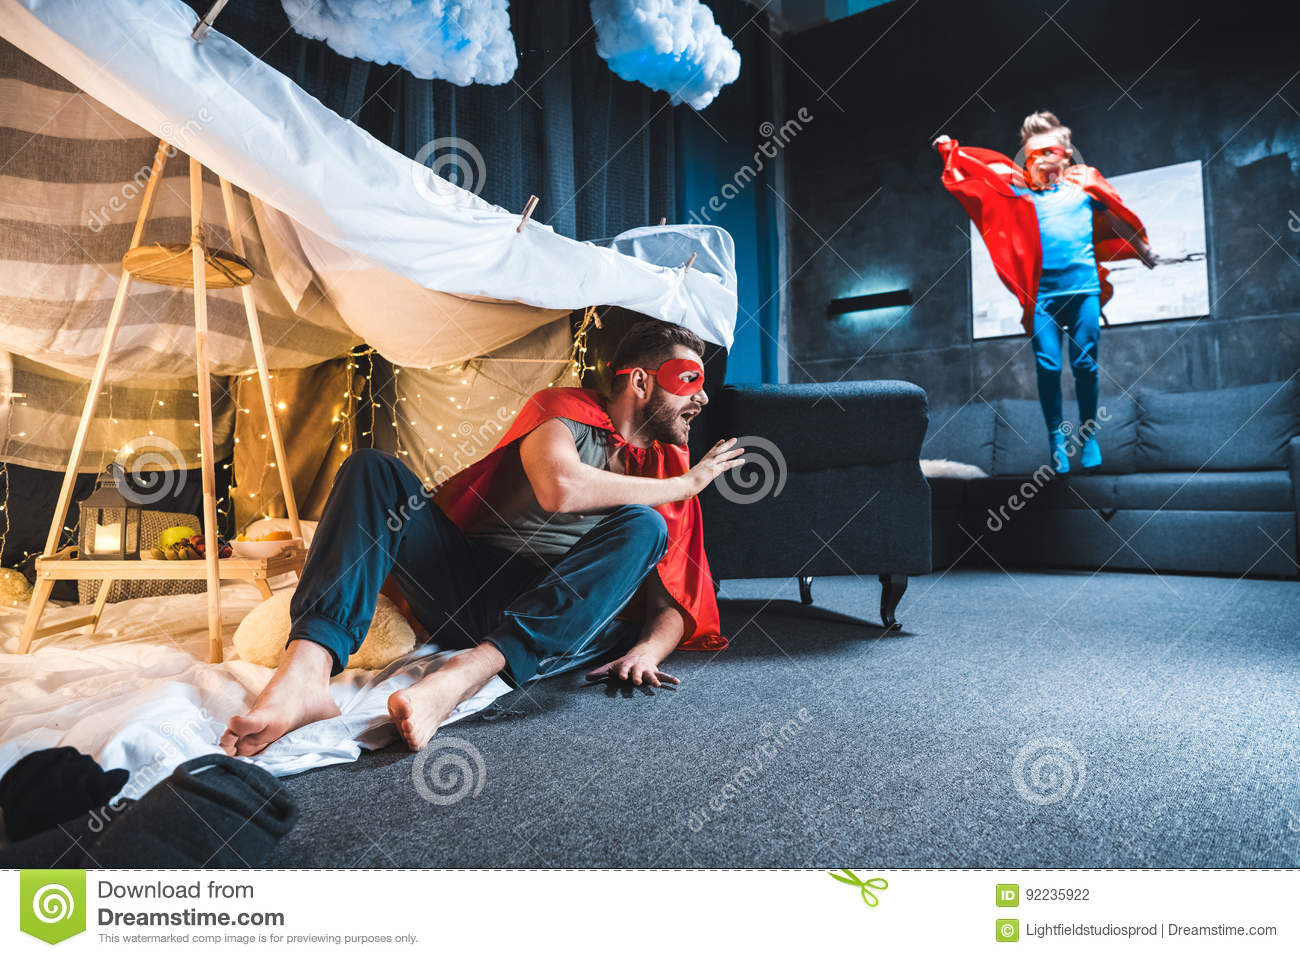 Father and son in red superhero costumes playing